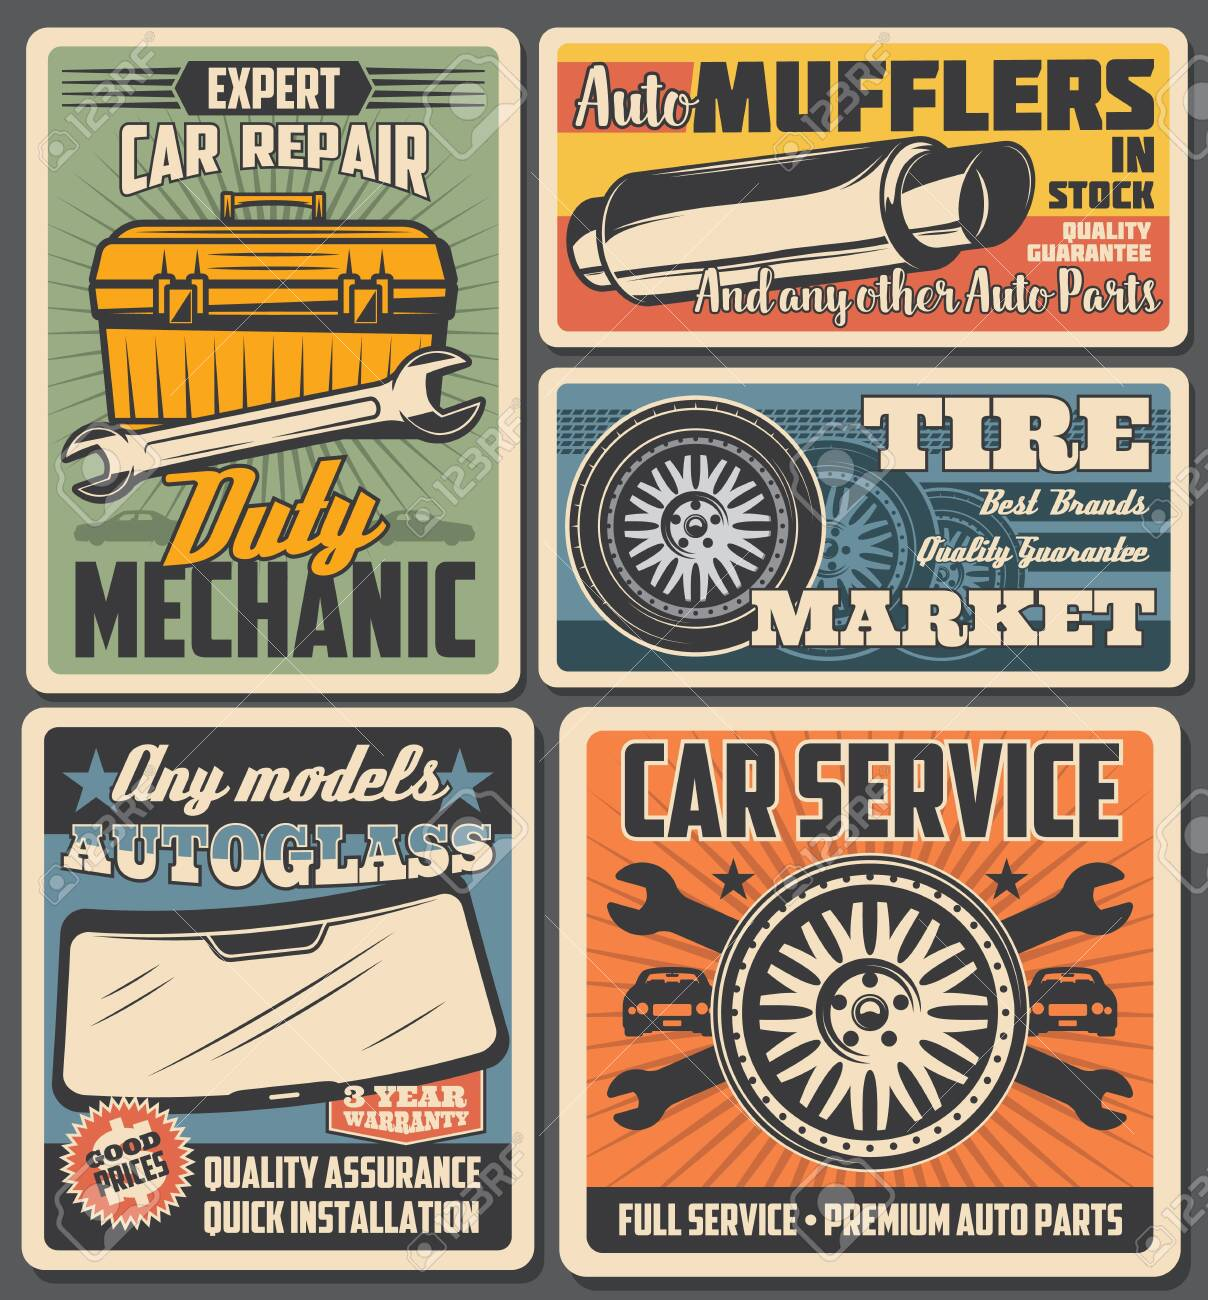 Car service and auto repair vector posters with spare parts and vehicle mechanic toolbox. Automobile wheels, tires and spanners, wrenches, autoglasses and exhaust pipe retro design - 128162217